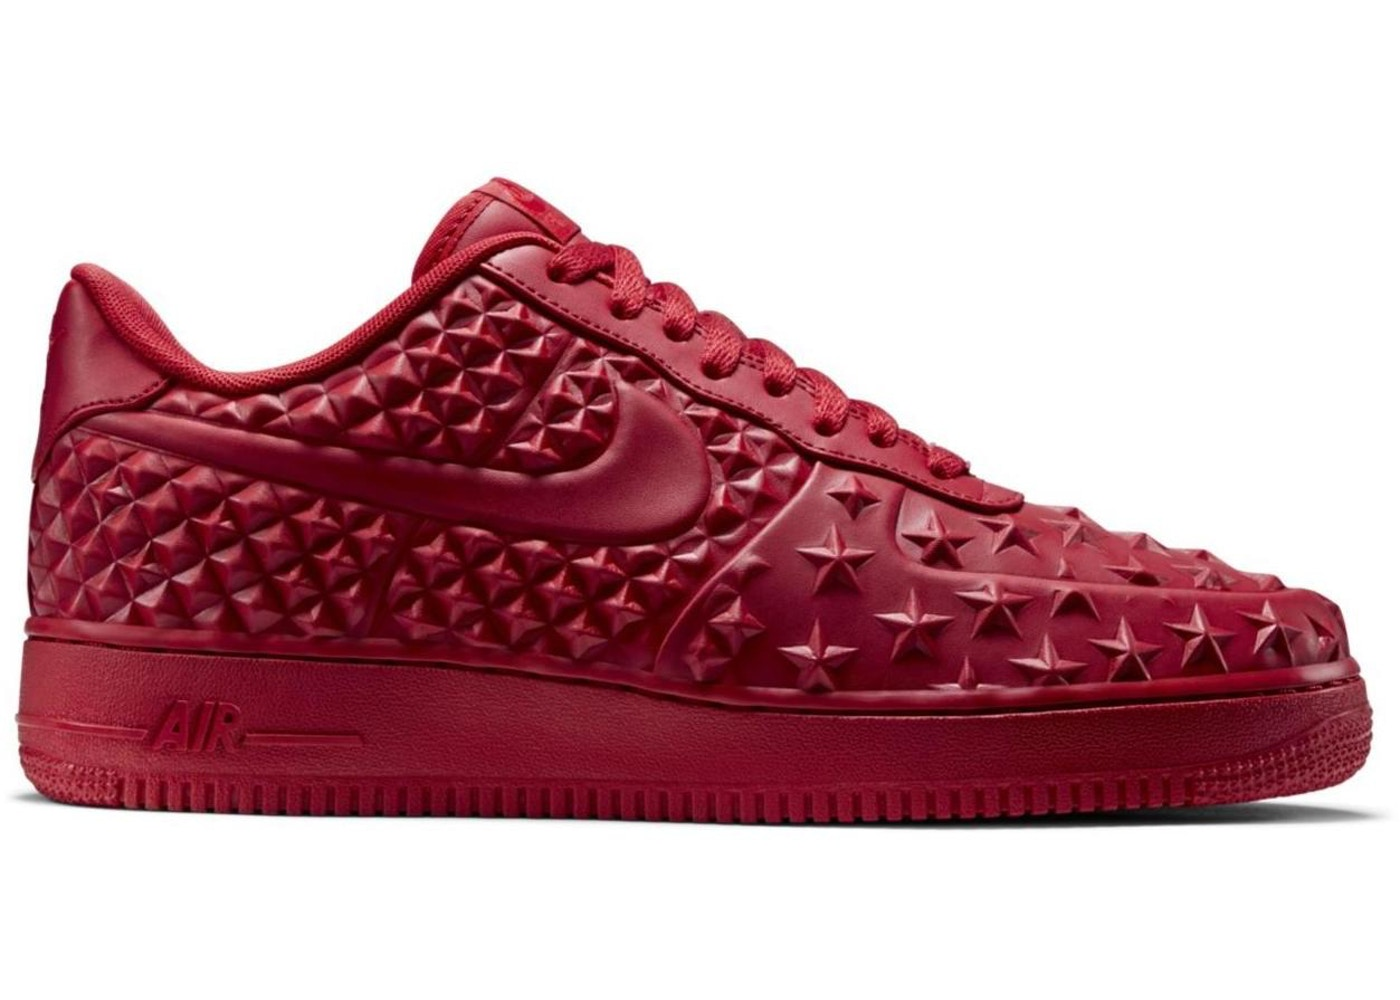 ナイキ NIKE エア スニーカー 【 AIR FORCE 1 LOW INDEPENDENCE DAY RED GYM REDGYM 】 メンズ